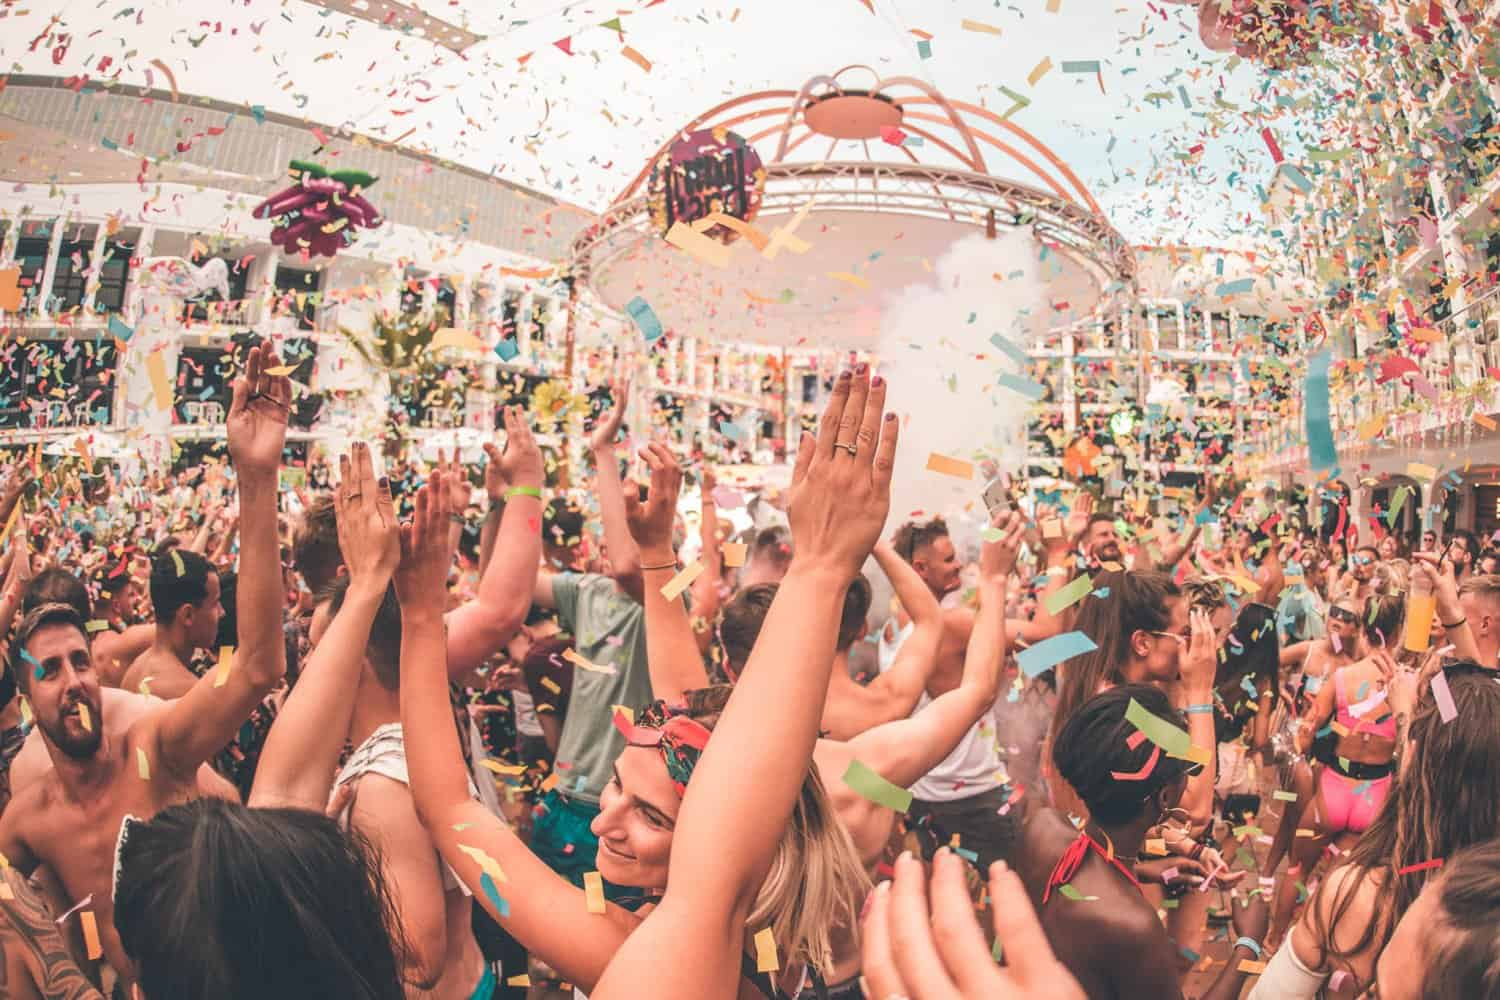 Cuckoo Land Pool Party Ibiza 2020 - Tickets, Events and Lineup 2